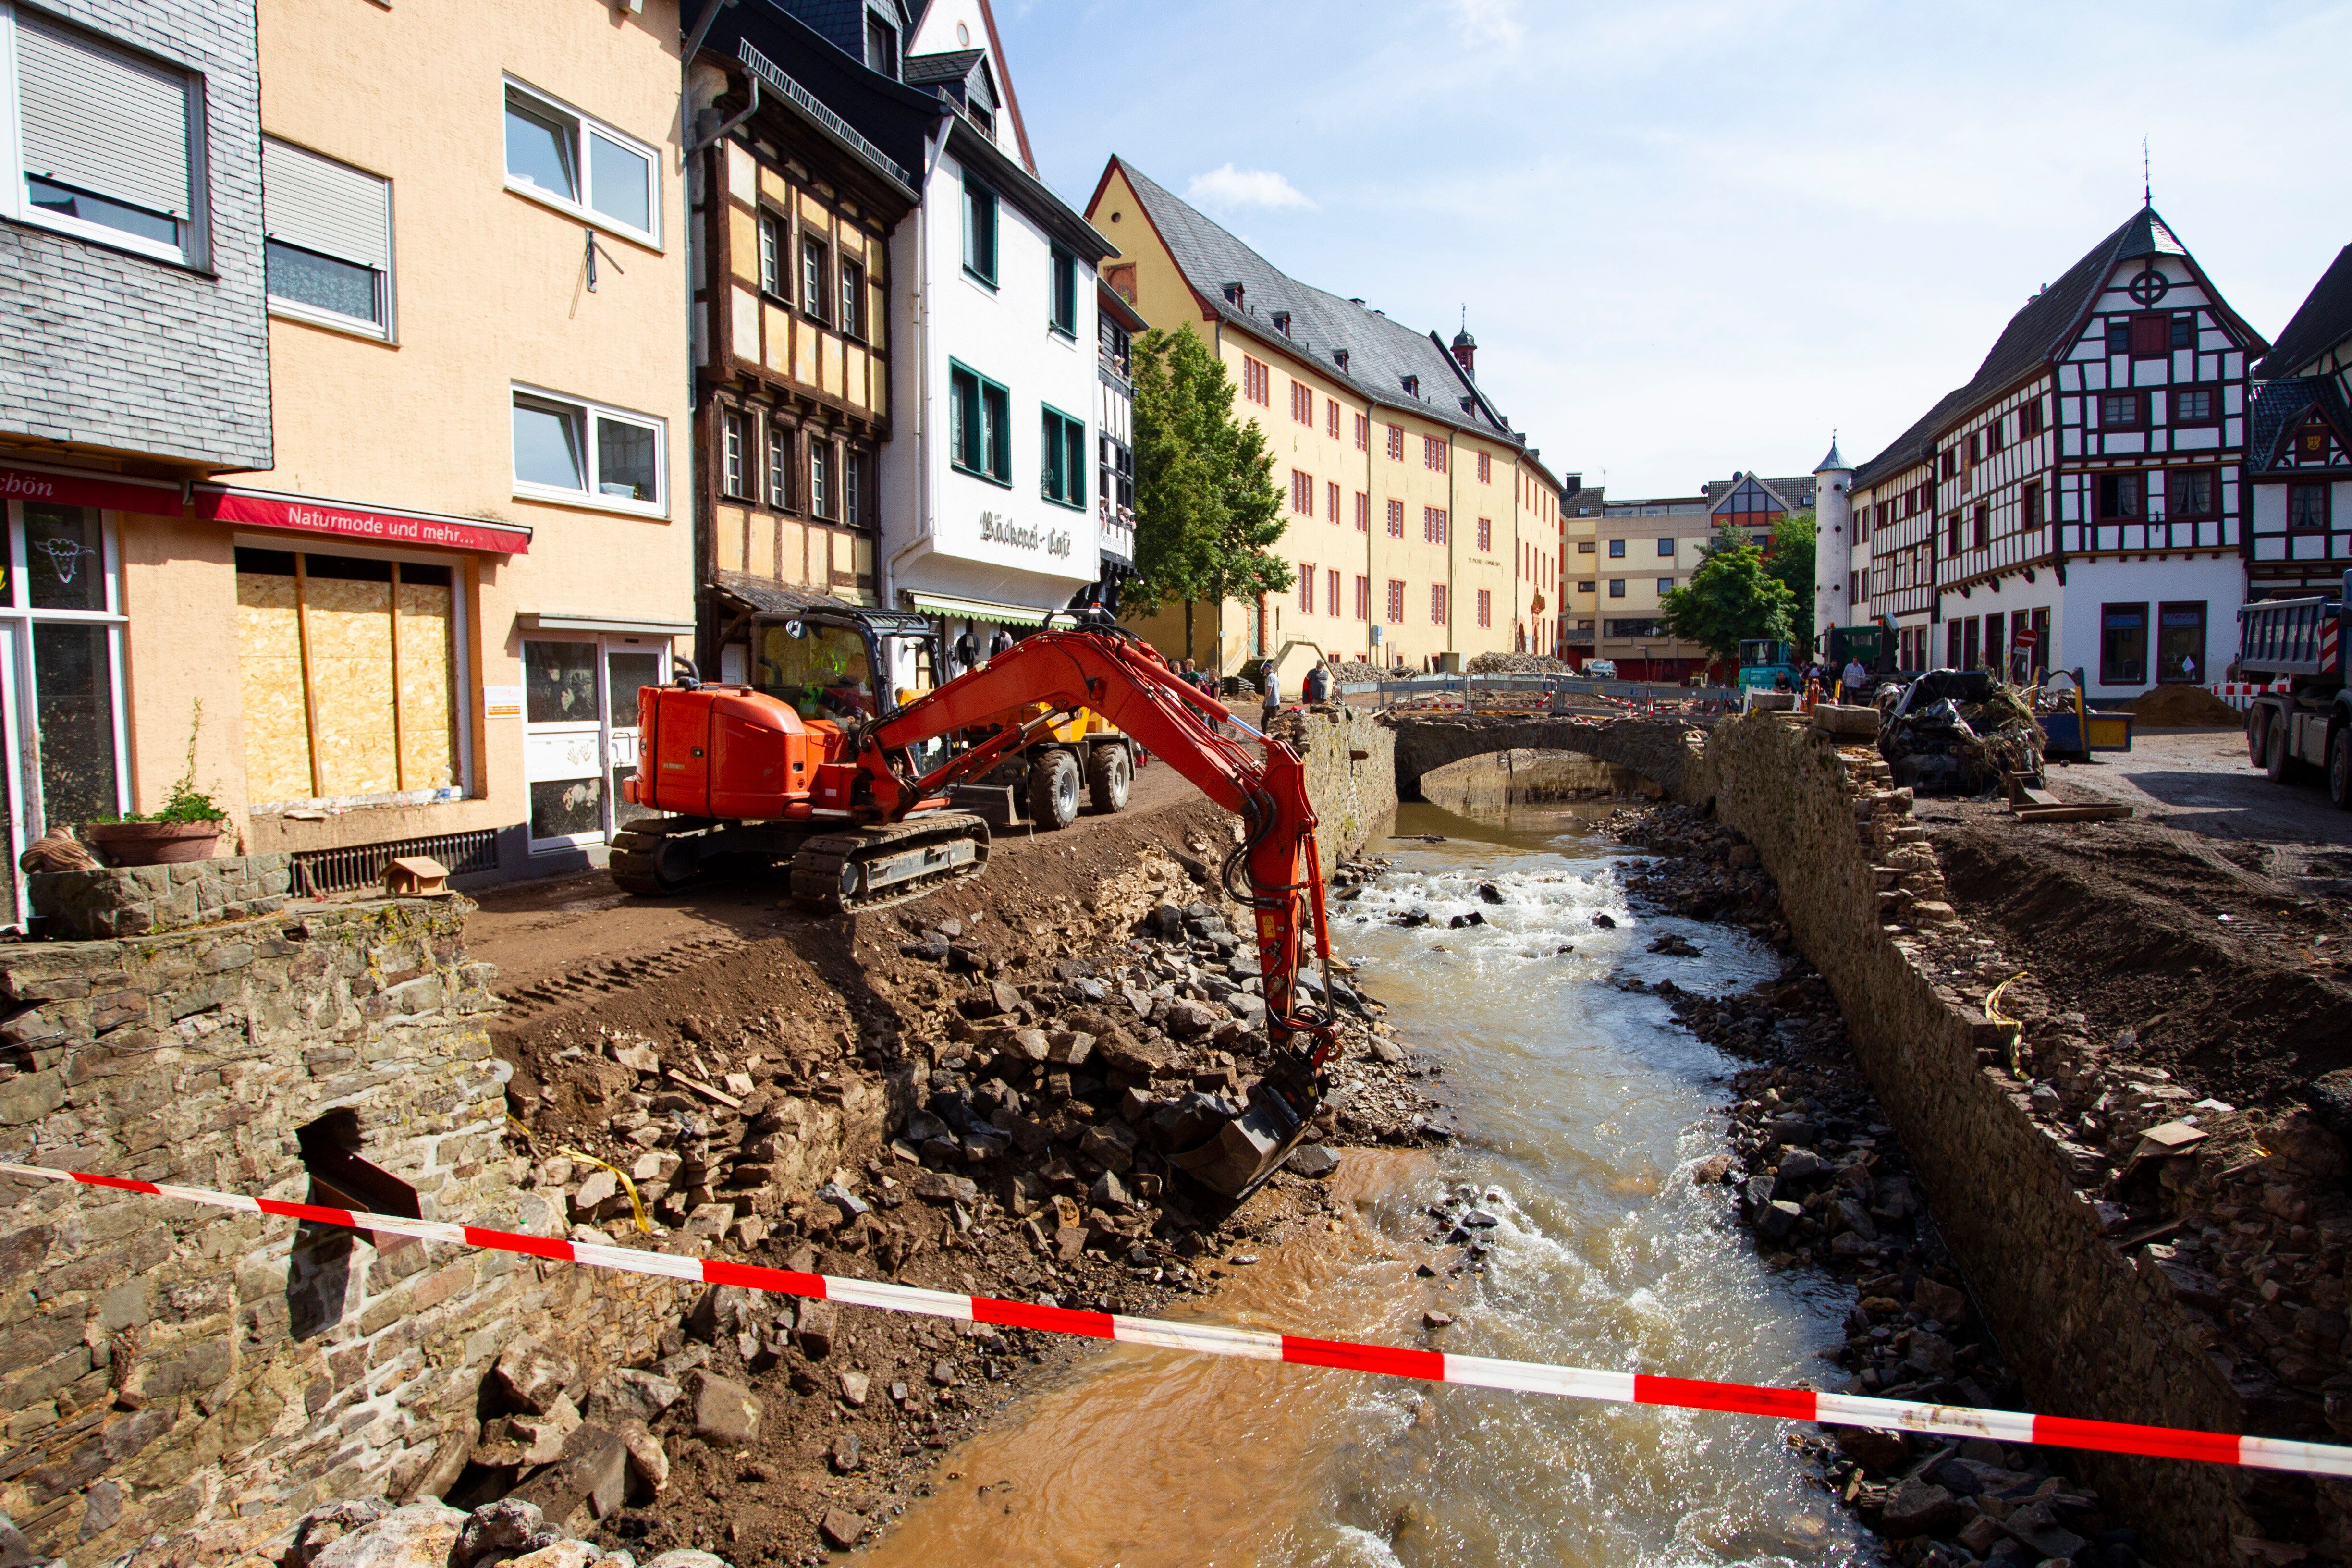 An excavator at work on the banks of the Erft River during clearing operations after flooding in North Rhine-Westphalia.